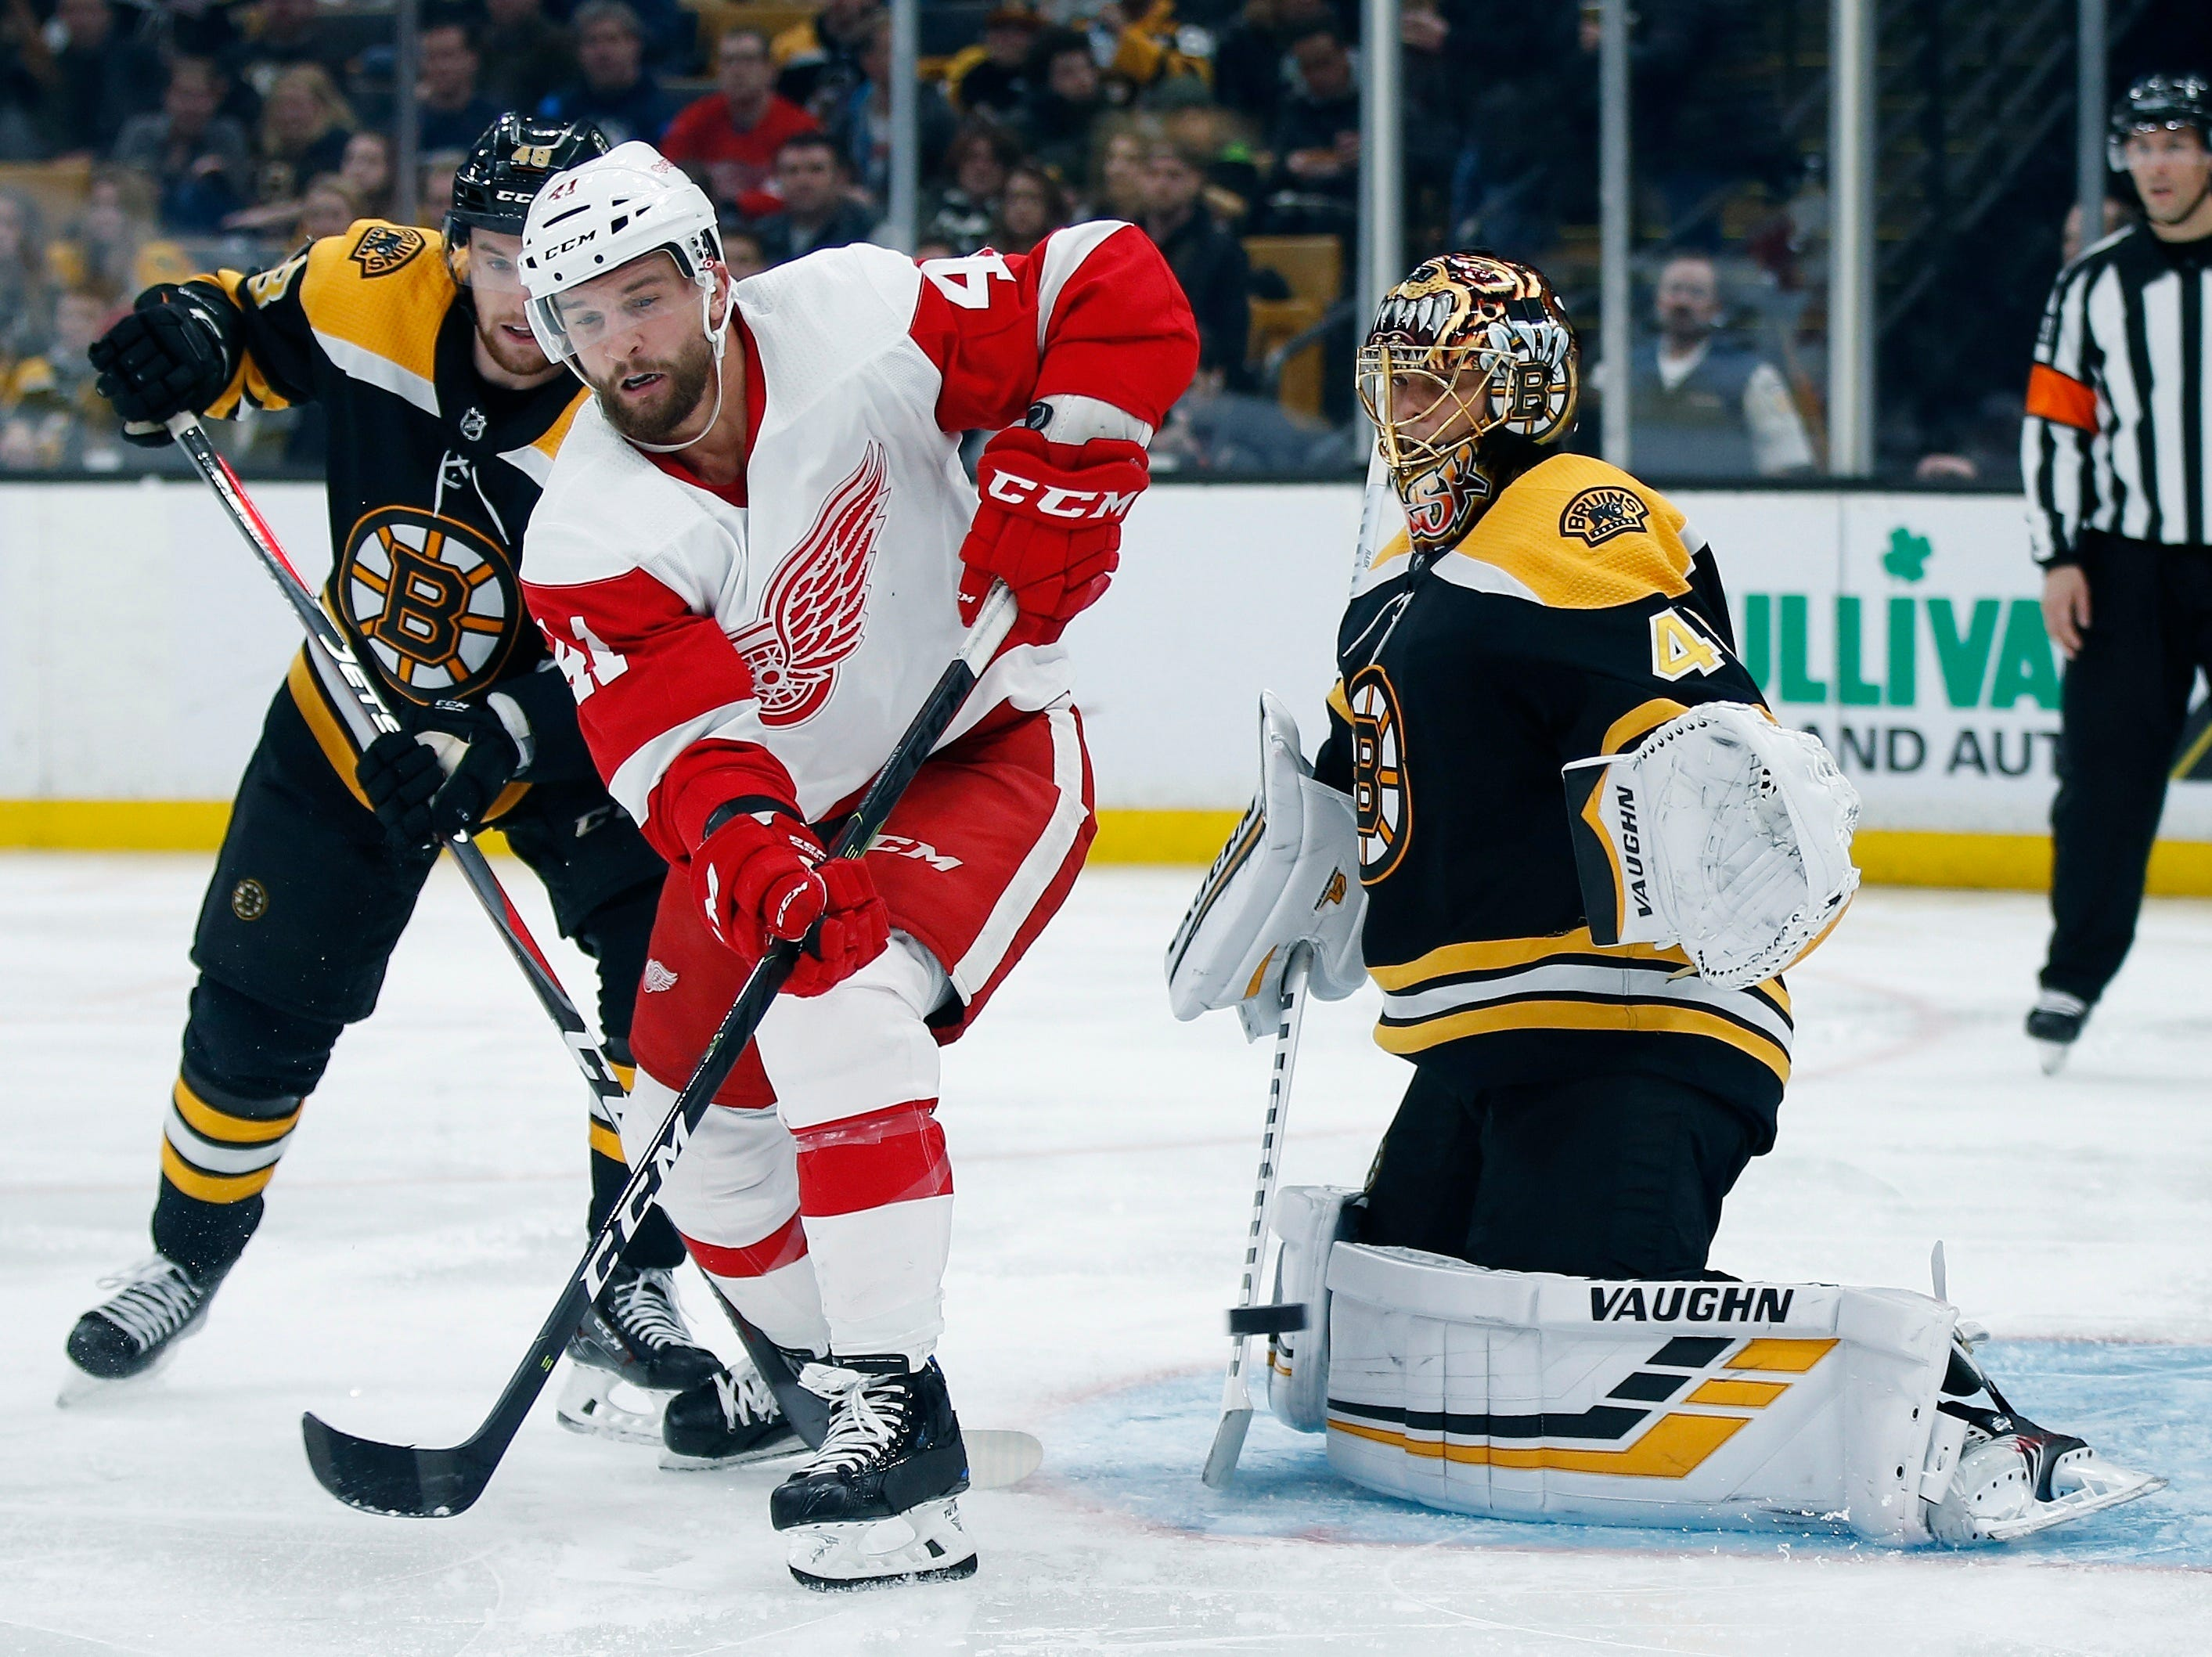 The puck goes wide of Boston Bruins' Tuukka Rask (40) as teammate Matt Grzelcyk (48) defends against Detroit Red Wings' Luke Glendening (41) during the third period.